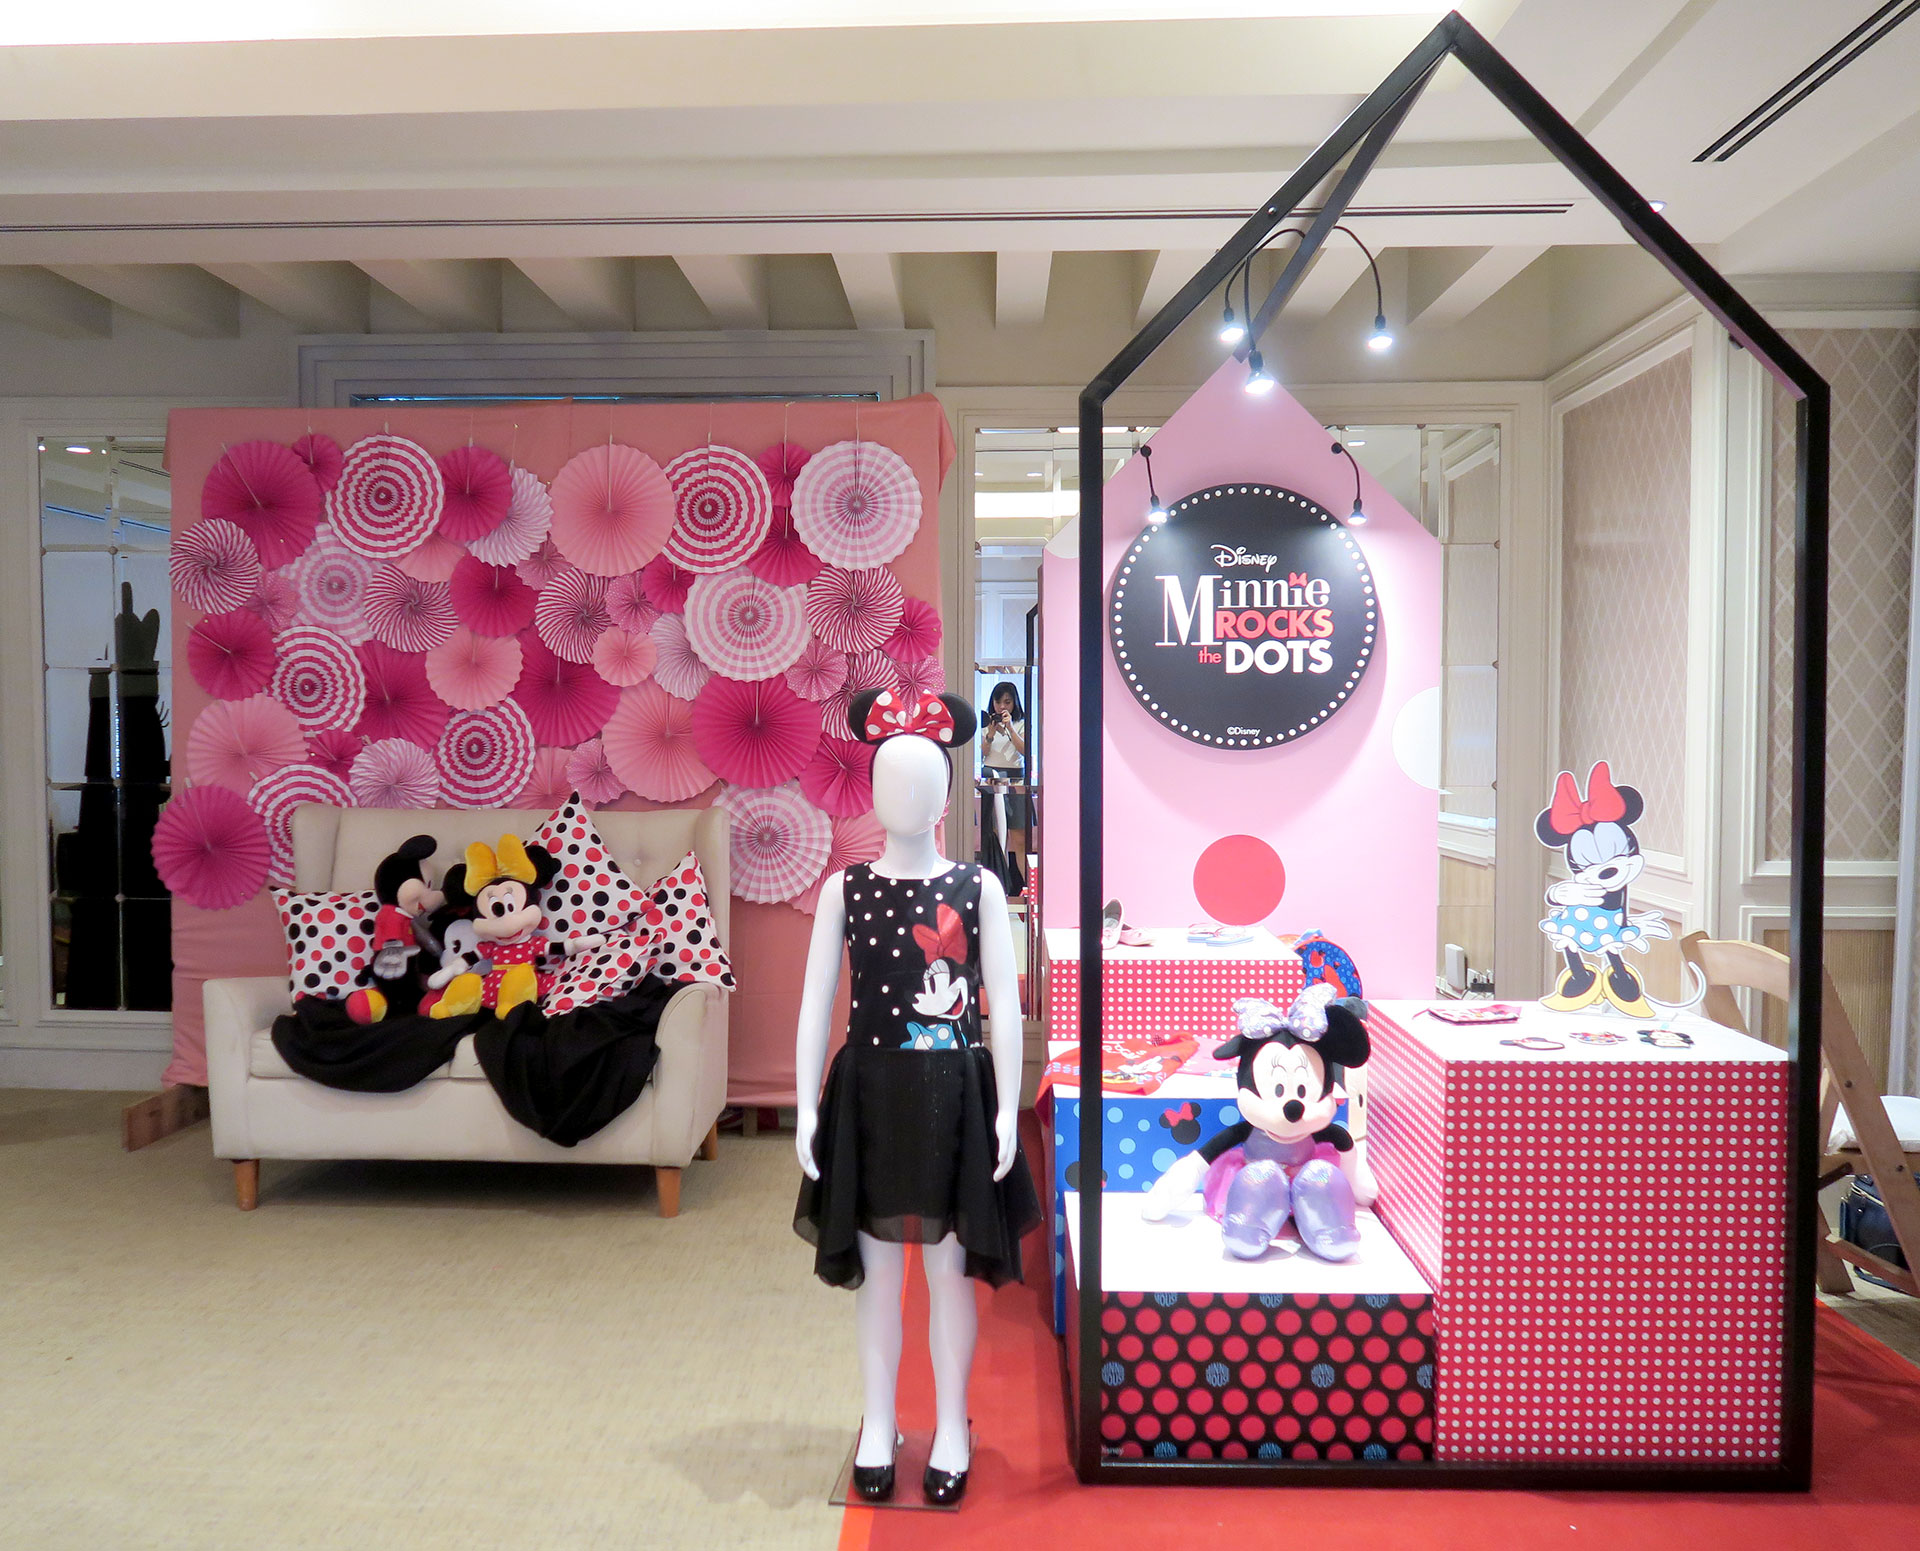 10 Girlstuff Minnie Mouse Nail Lacquers Collection Review Swatches Photos - Gen-zel She Sings Beauty